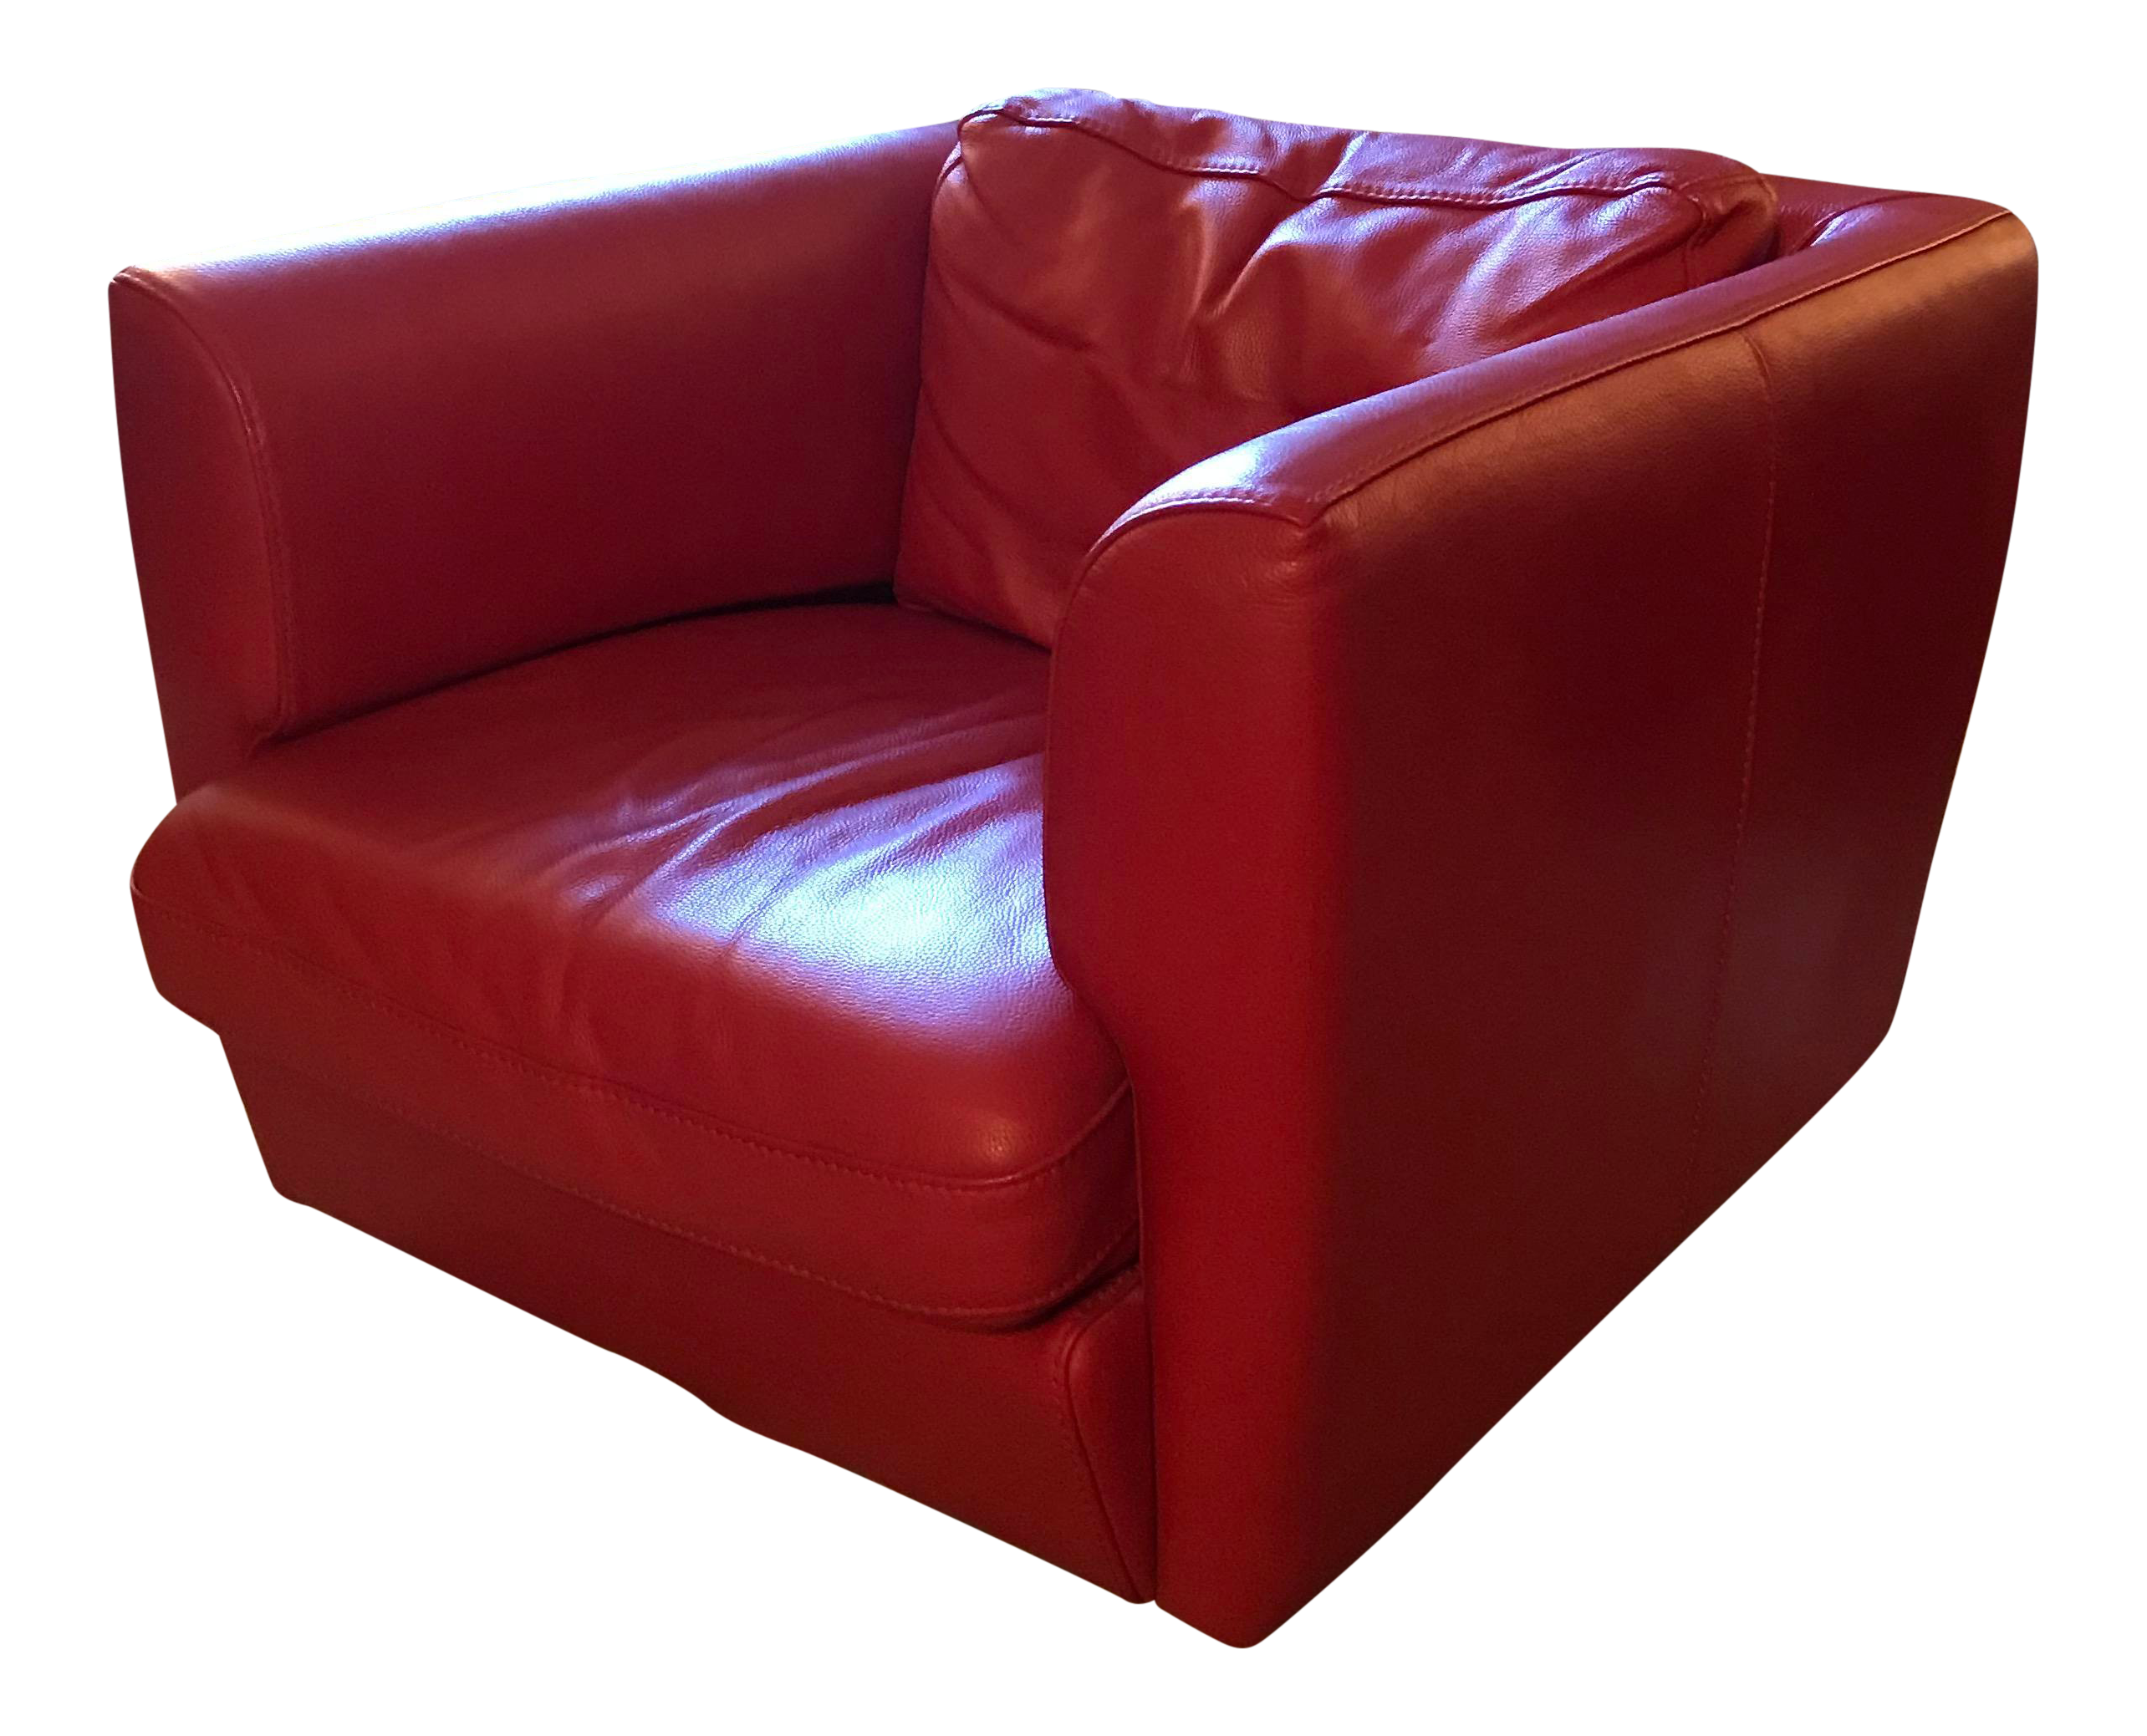 Roche Bobois Red Leather Swivel Chair For Sale